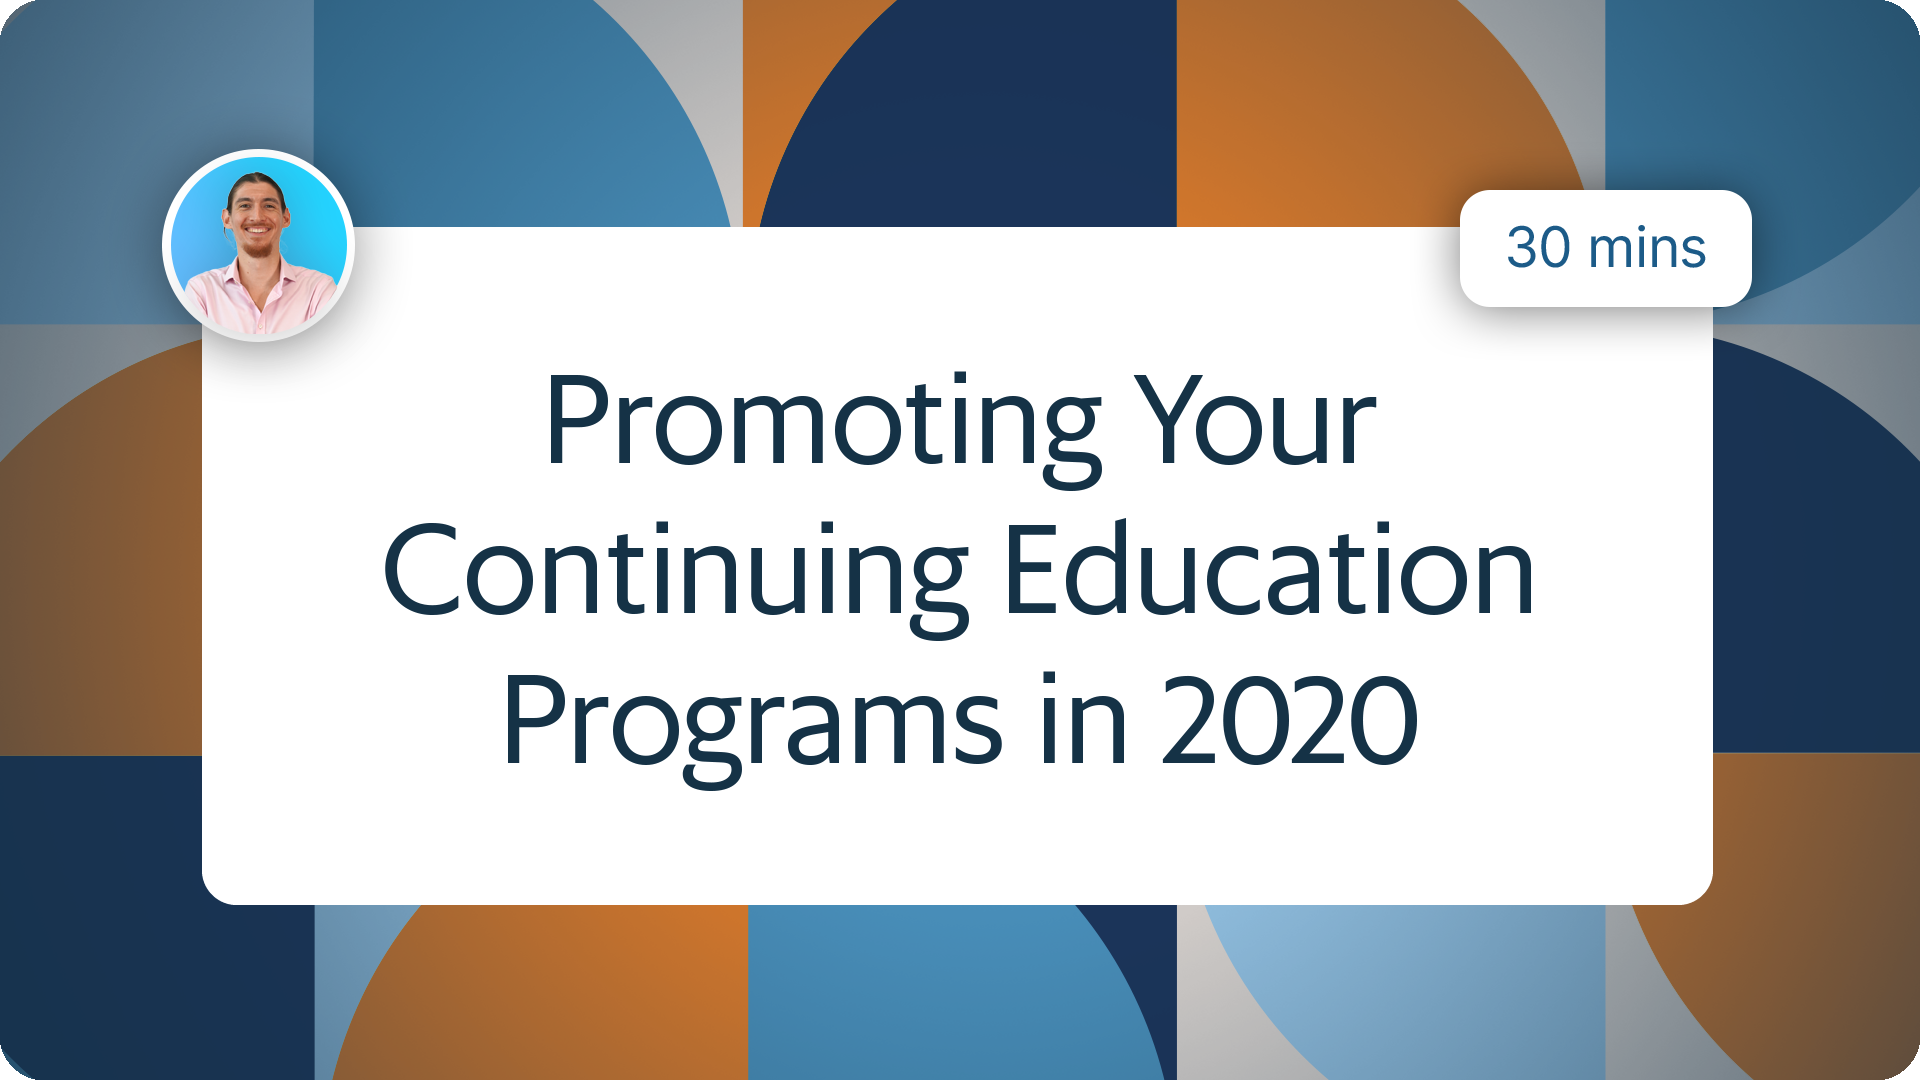 How to Market Continuing Education Programs in 2020